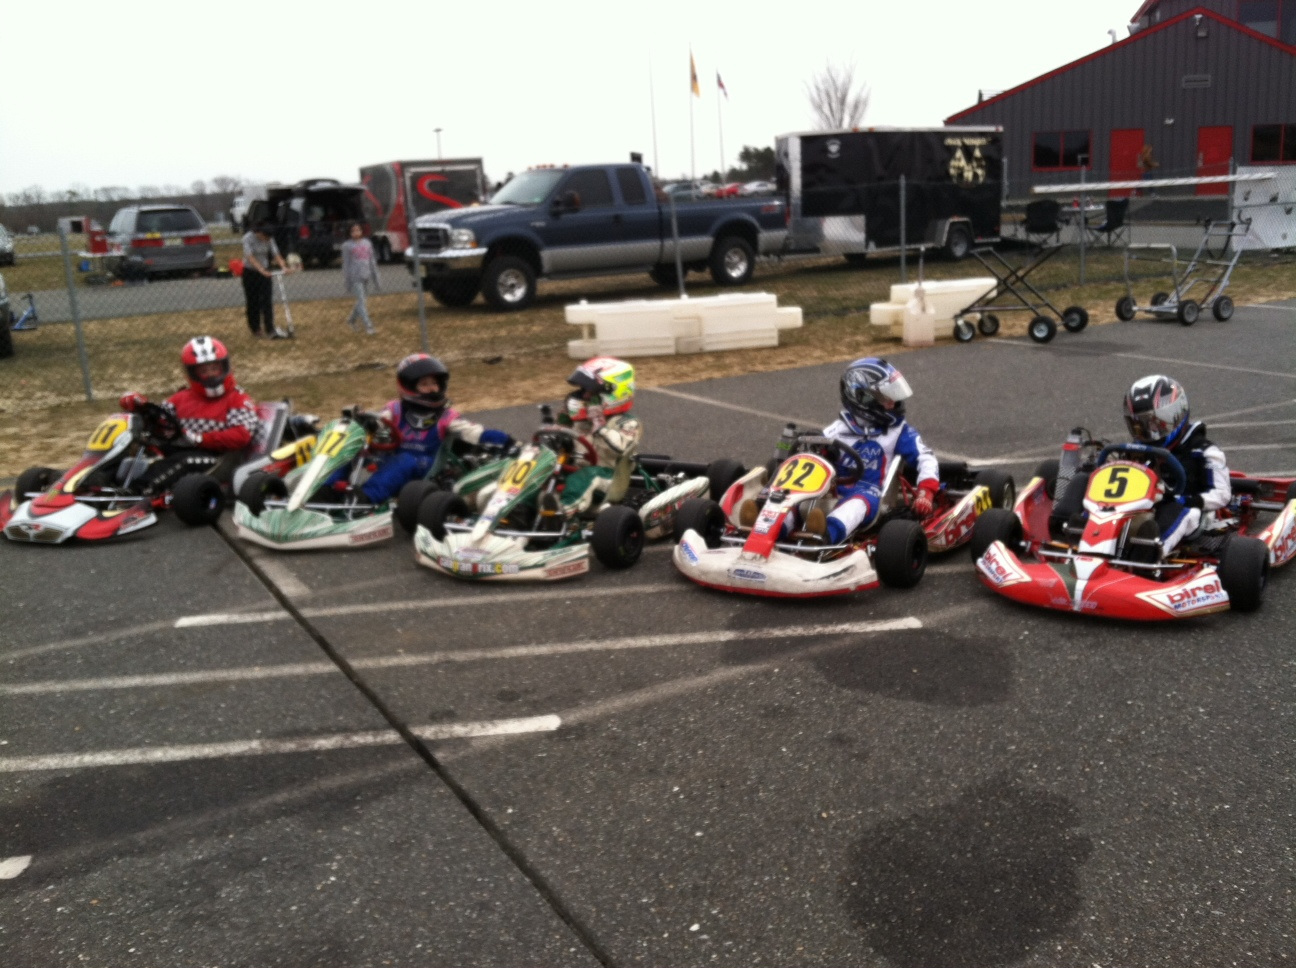 The 2014 racing season